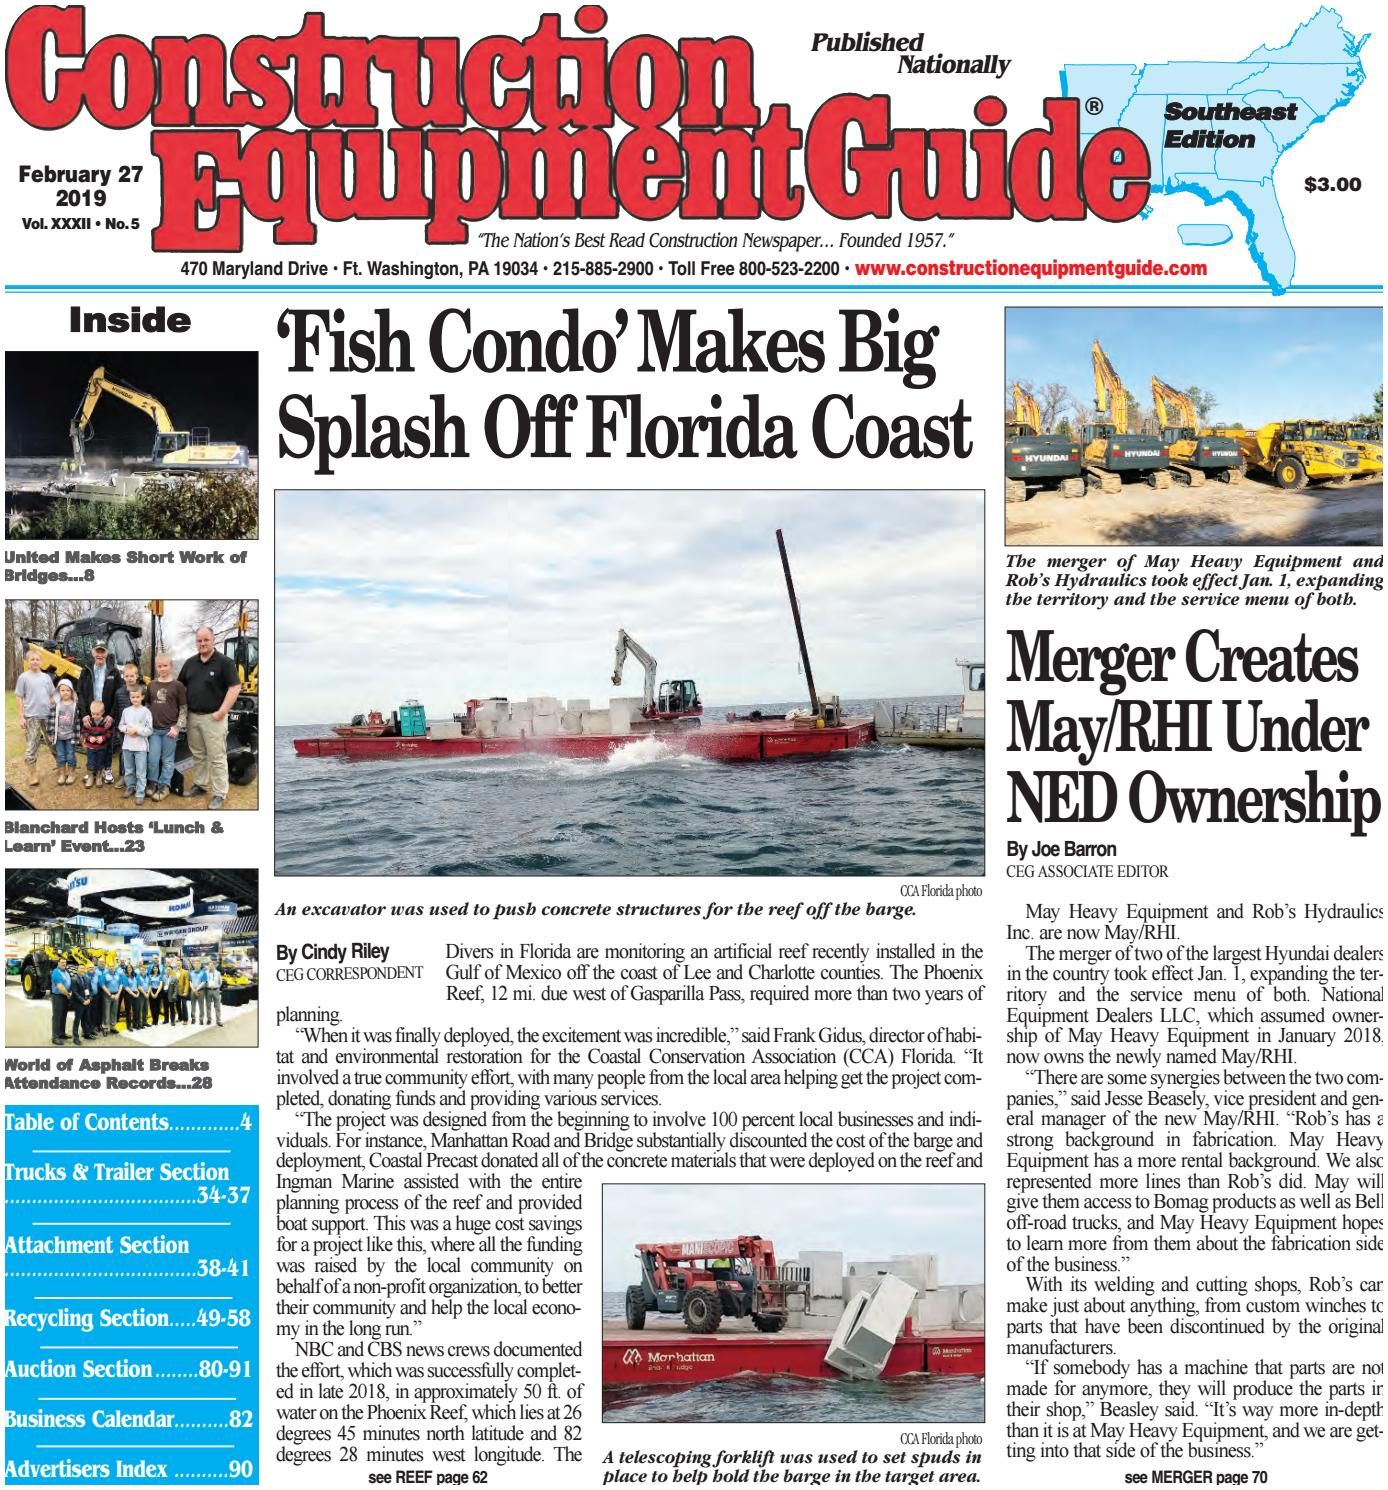 North Carolina Business Magazine southeast 5 February 27 2019 by Construction Equipment Guide issuu